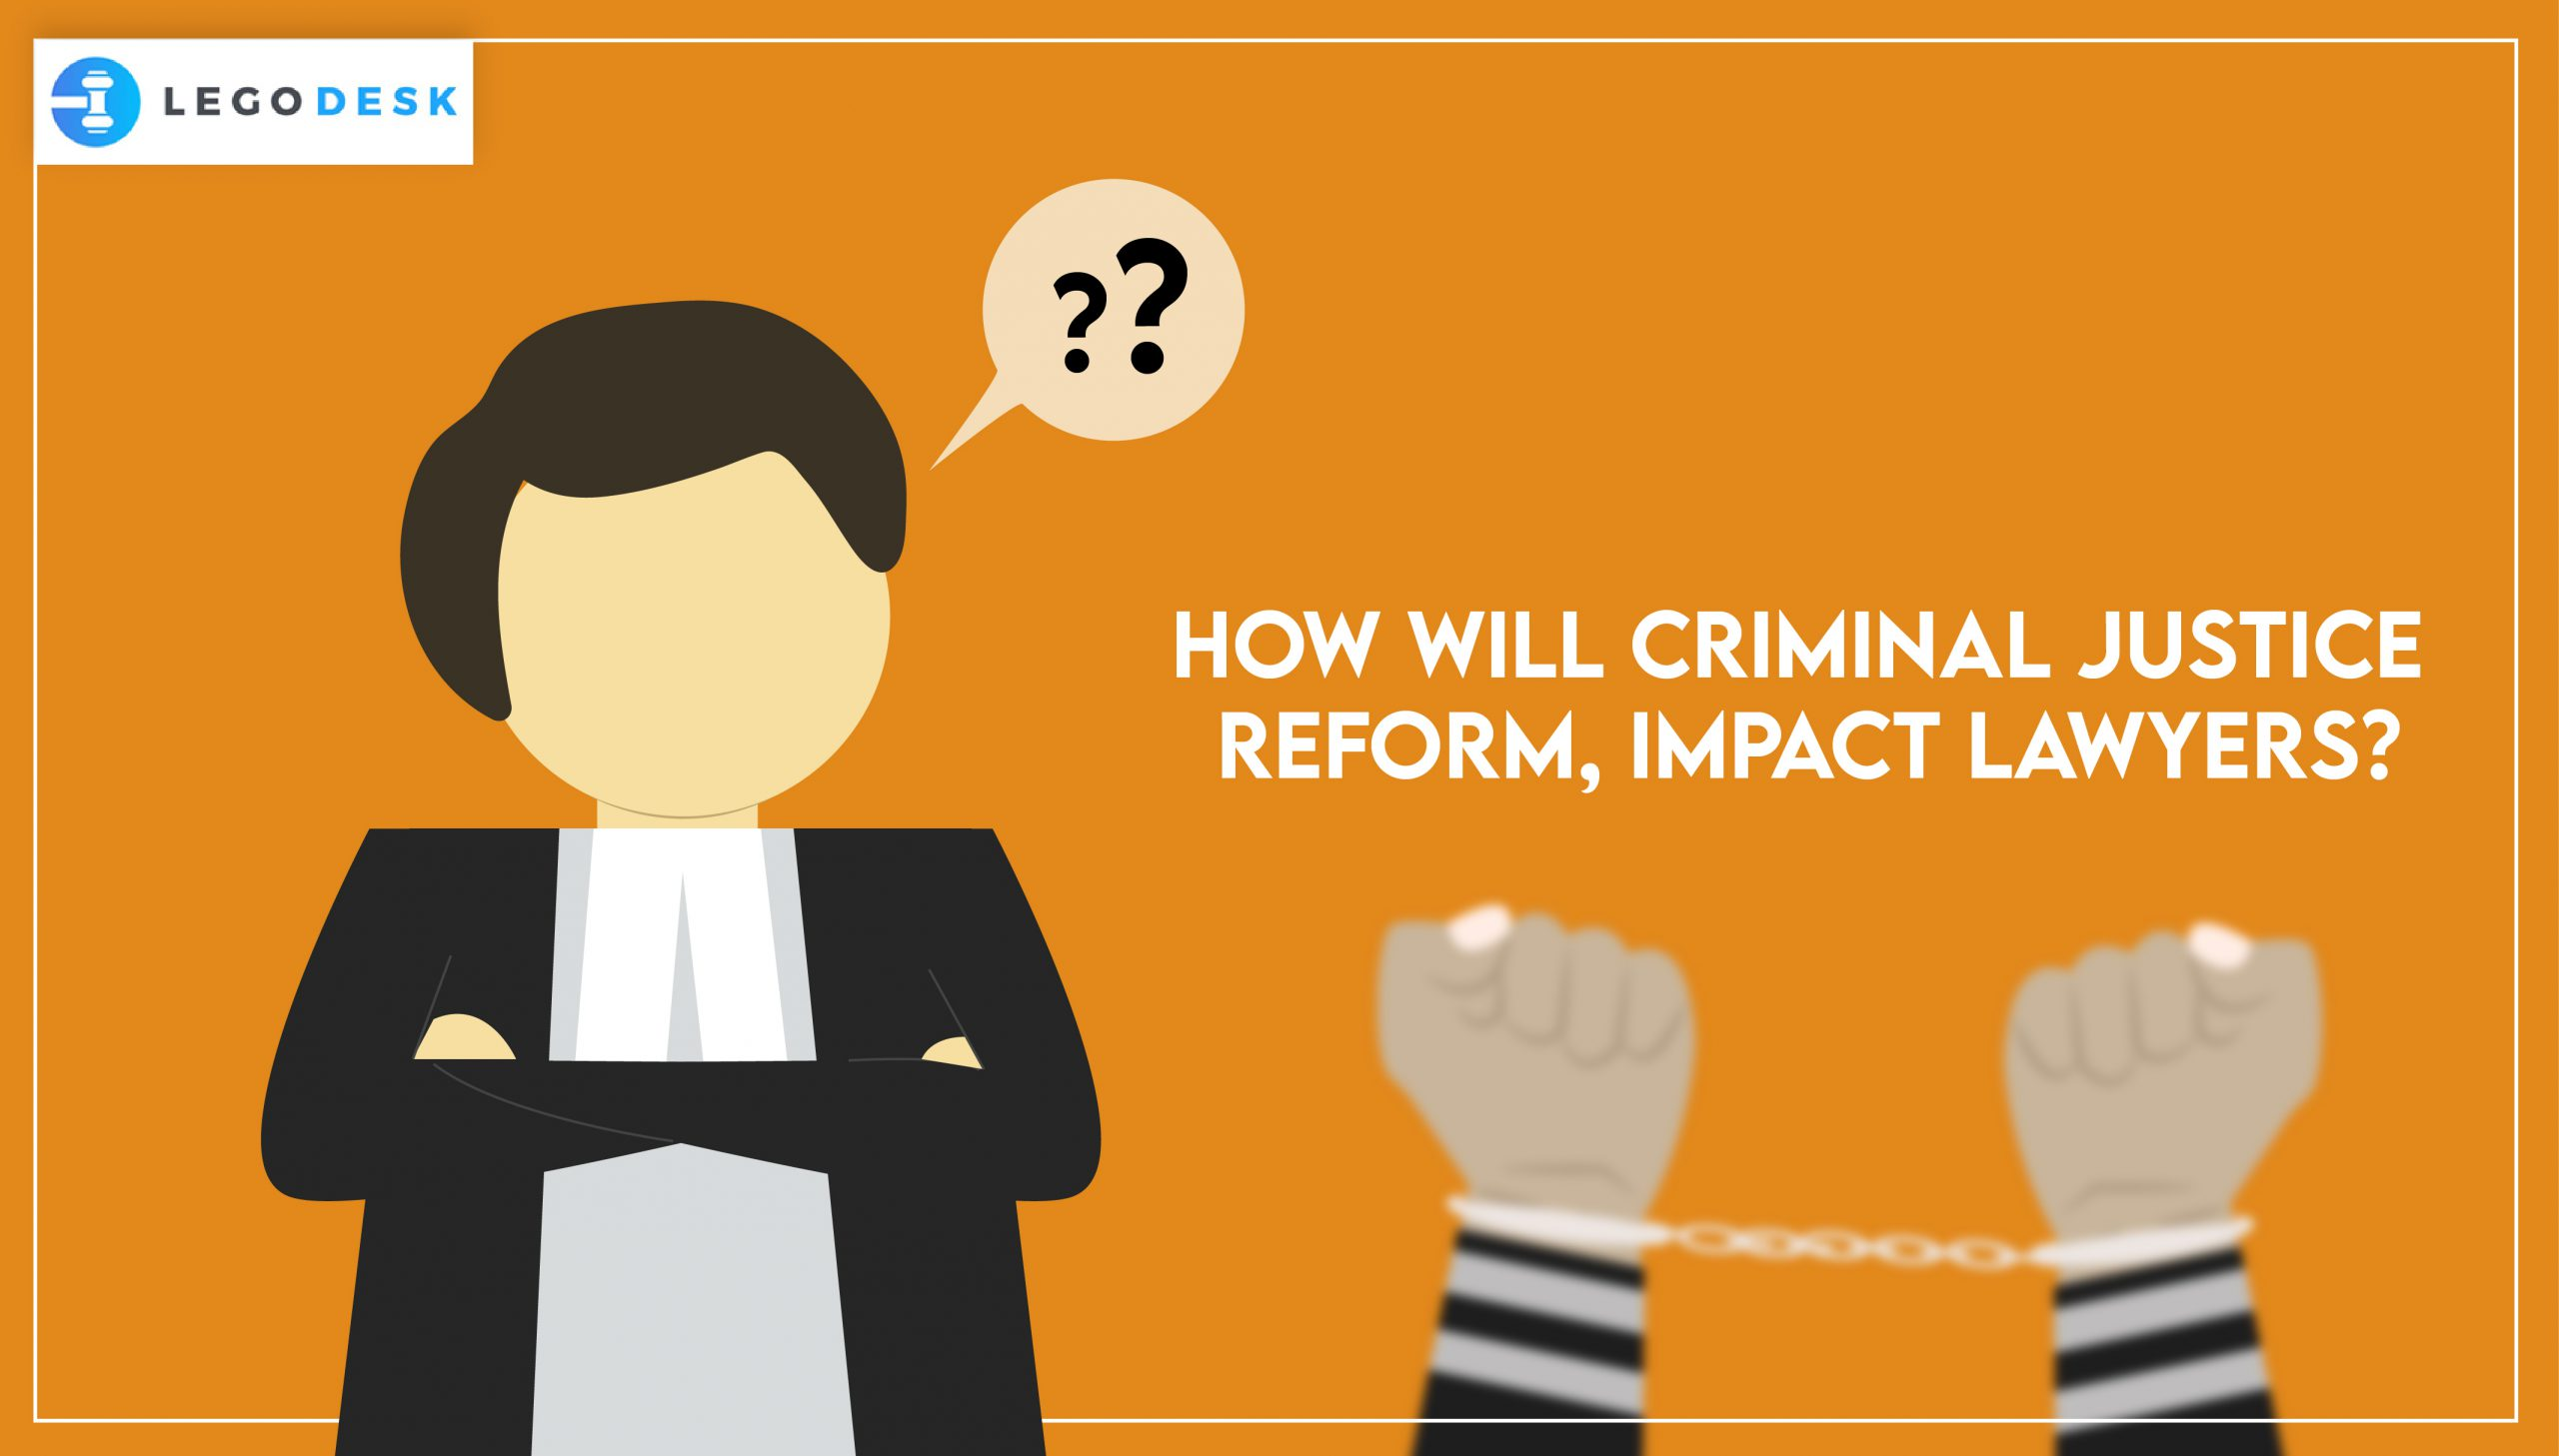 How Will Criminal Justice Reform Impact Lawyers?